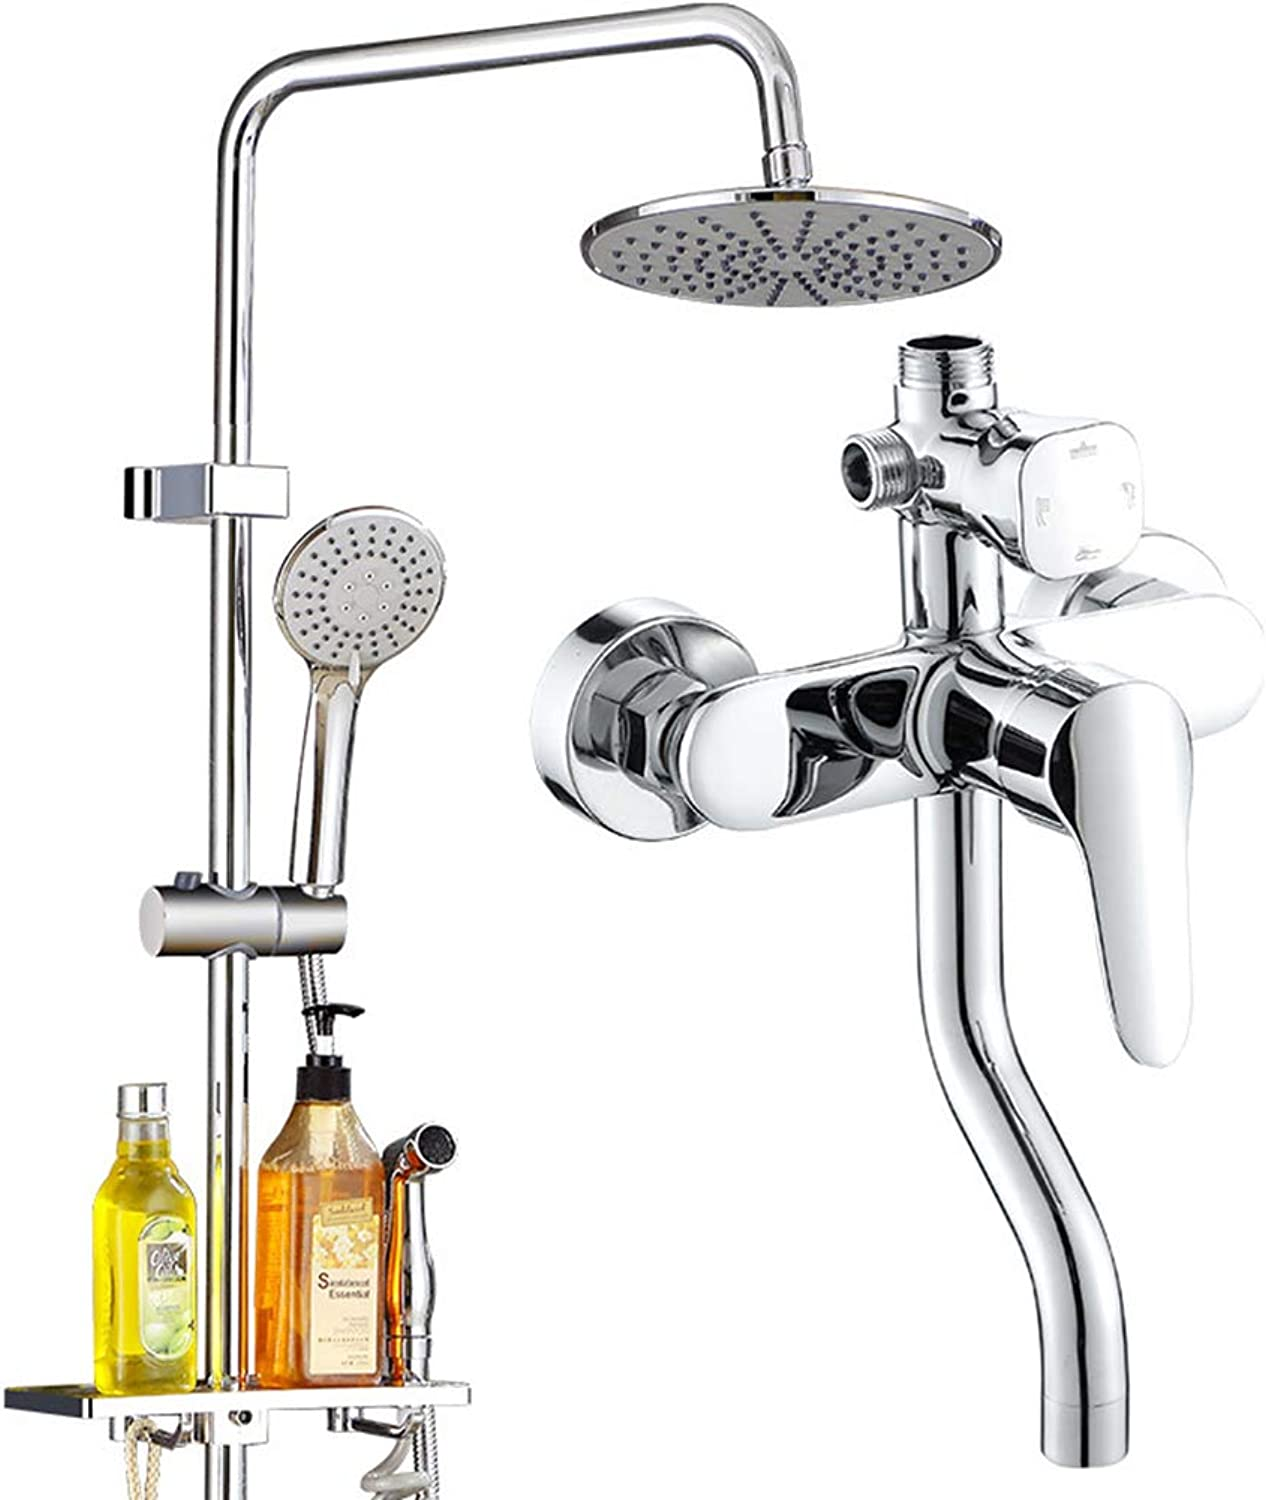 KJUHVBF Shower Column,Kit brass body + encryption explosion-proof hose, ABS engineering plastic, one button four control, electroplating